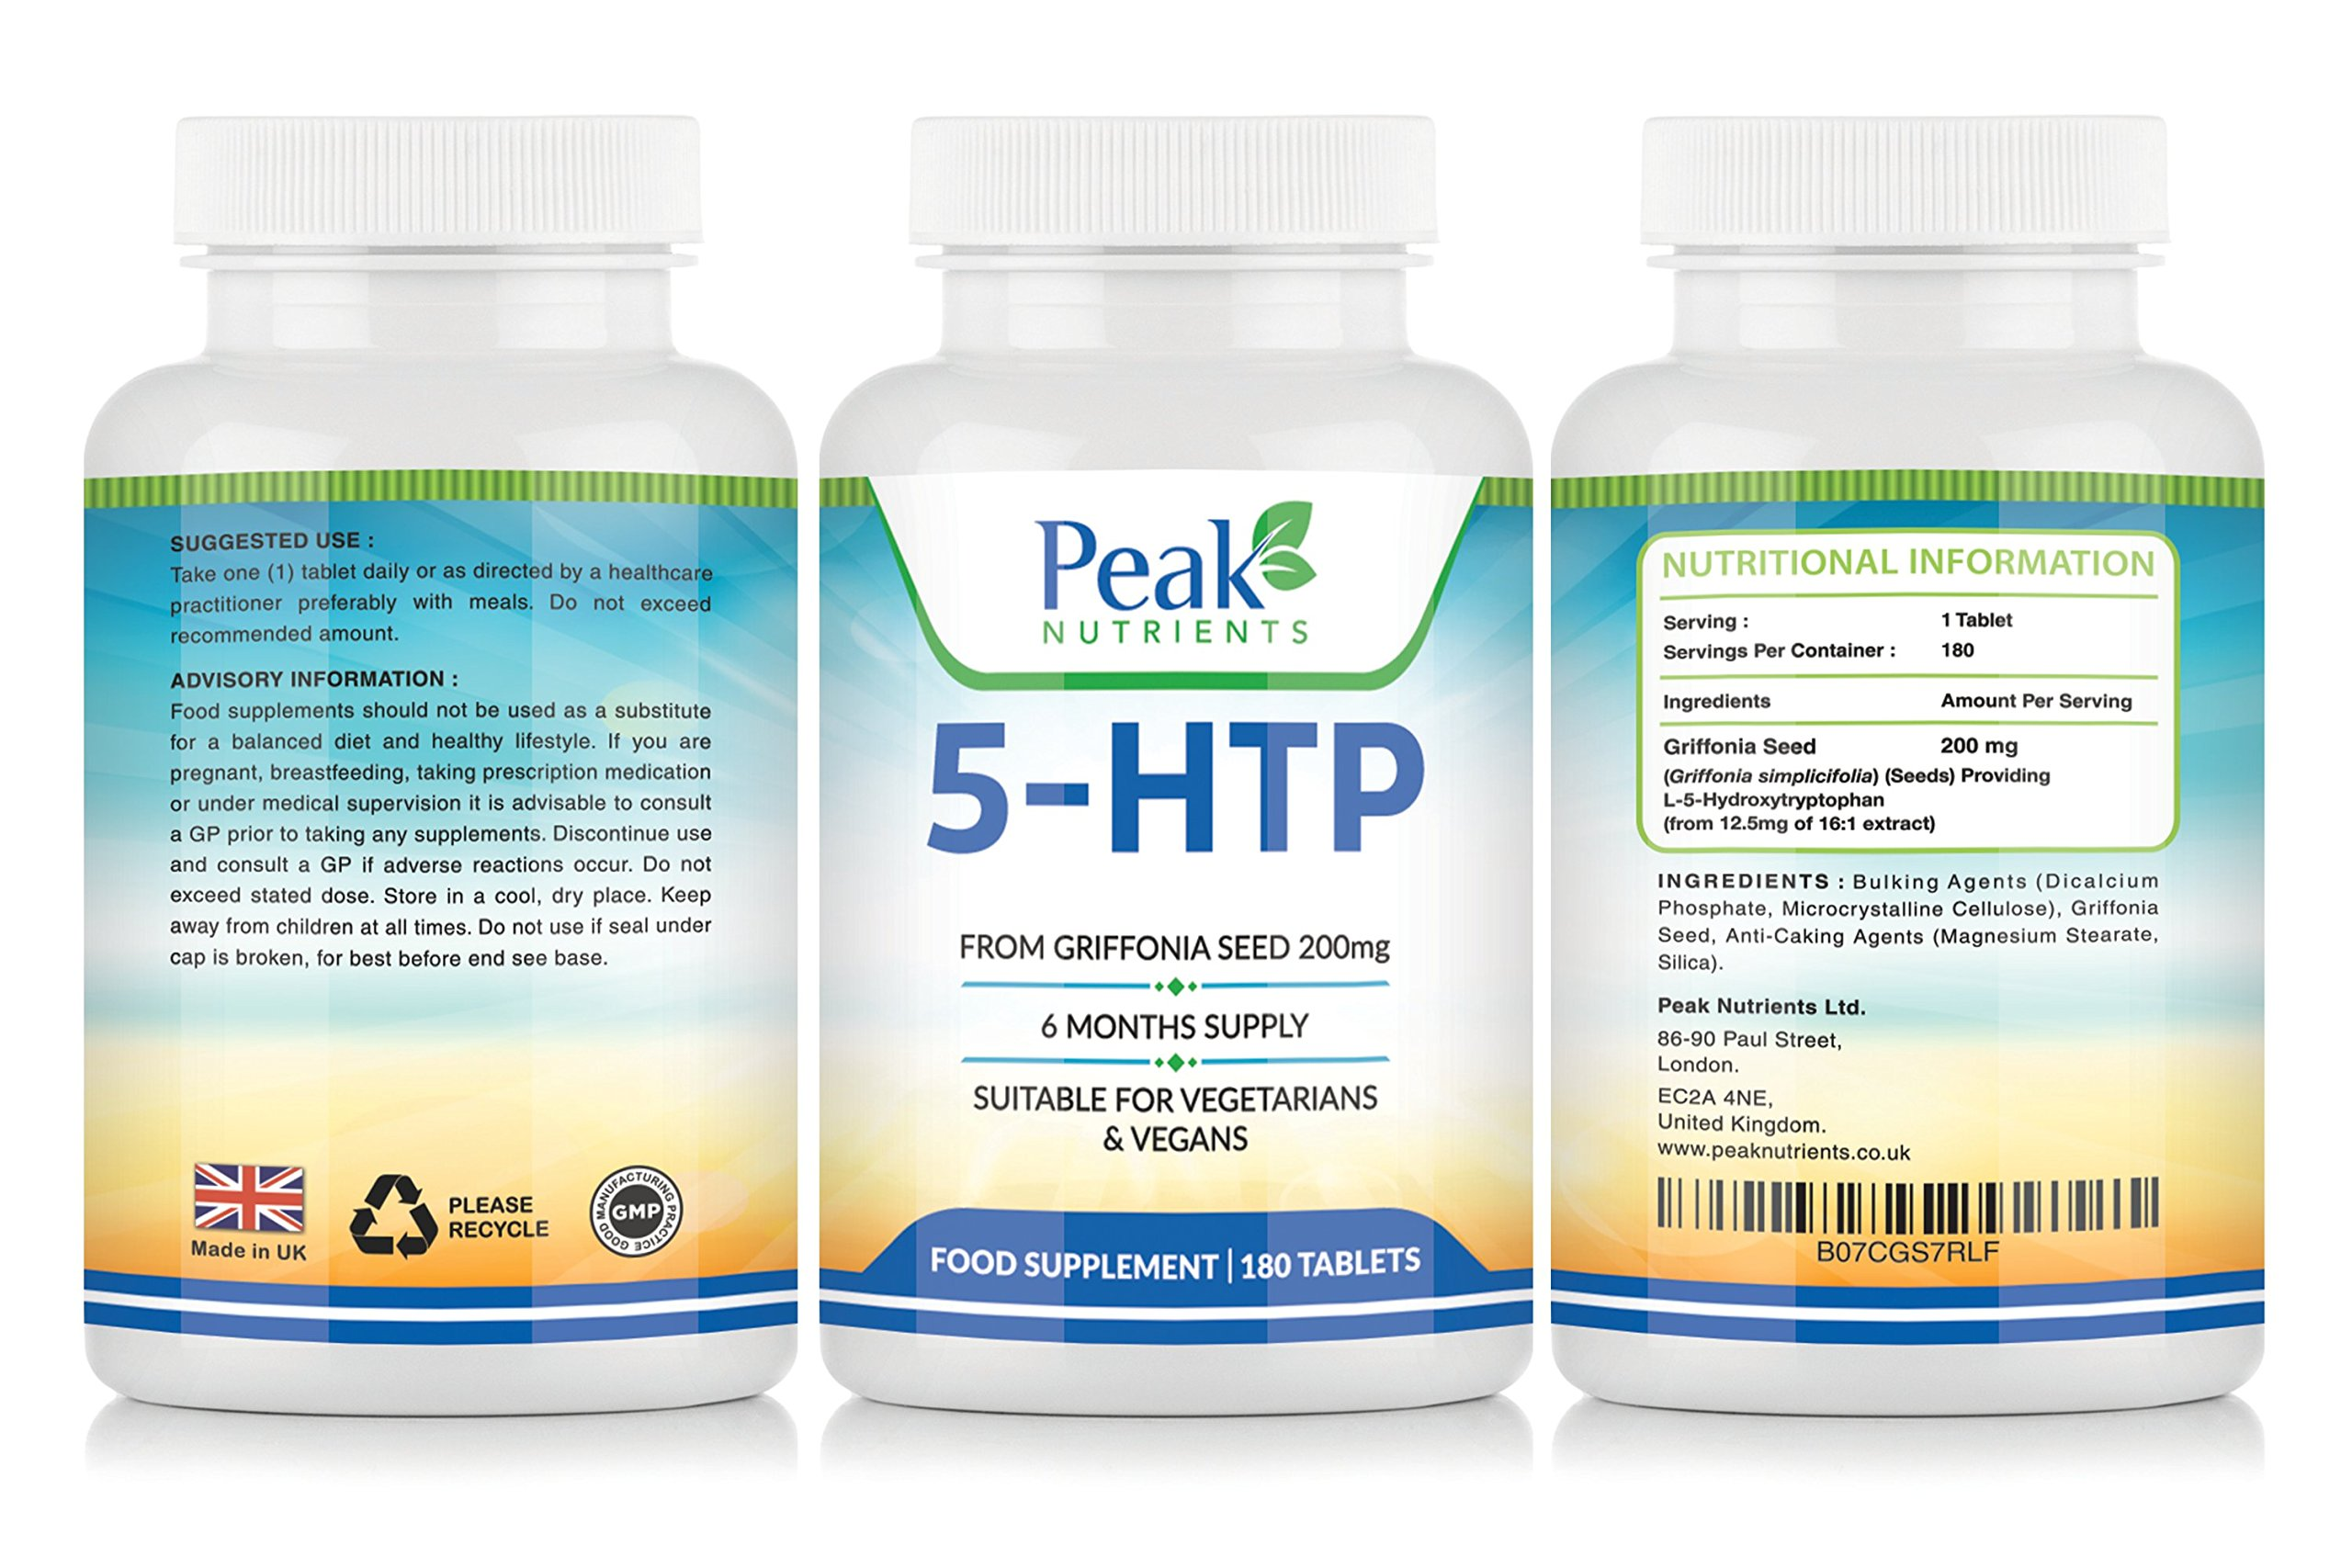 814UVdTjyAL - 5-HTP 200mg Double Strength 180 Tablets 6 Months Supply - Suitable for Vegetarians & Vegans - UK Manufactured Product - 5HTP Promotes Healthy Sleep and Restfulness and Increases Serotonin Levels